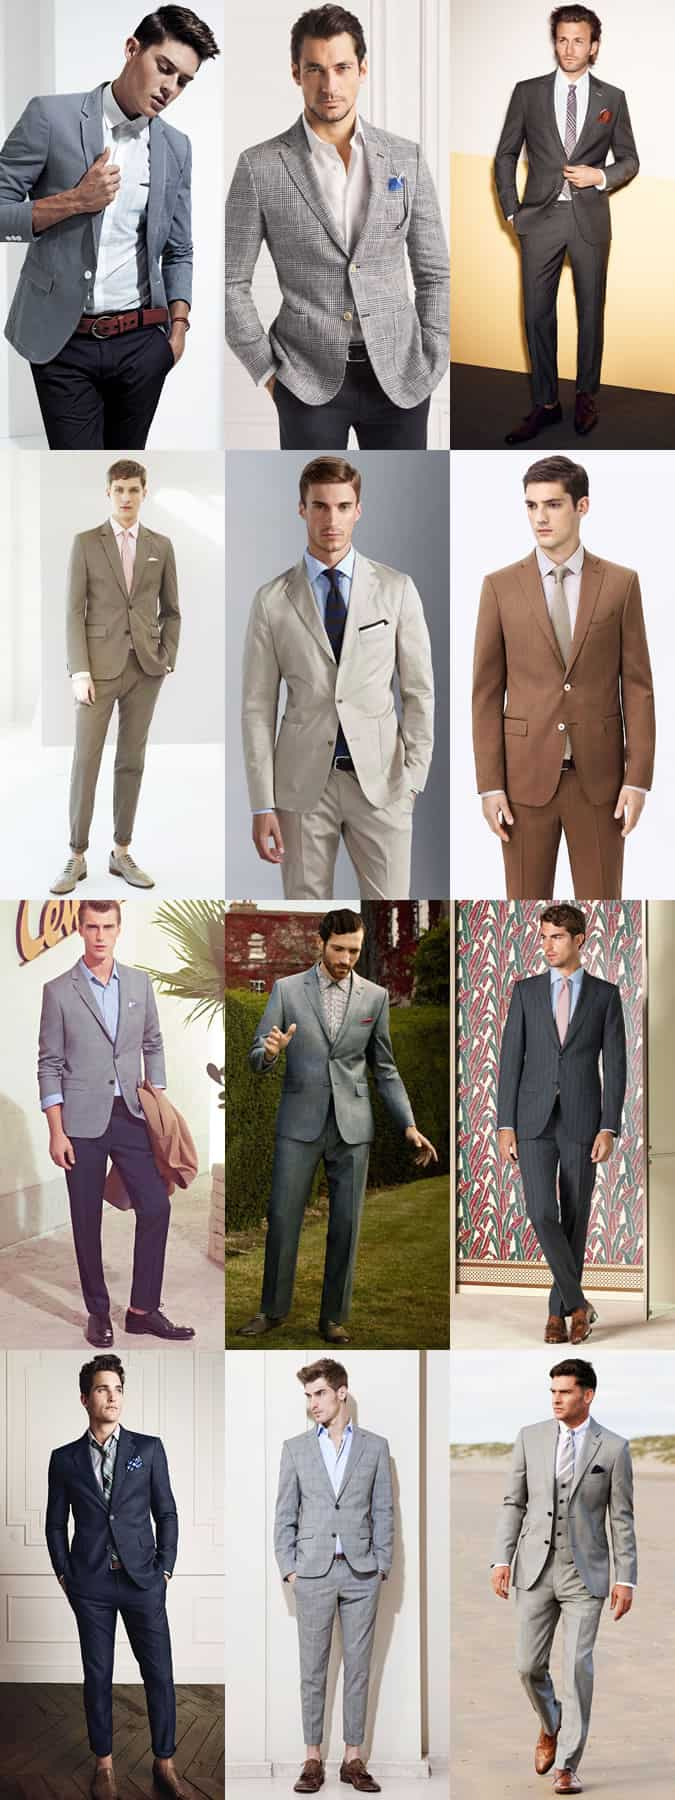 Wedding Attire For Men.Dressing For A Summer Wedding Part 1 As A Guest Fashionbeans